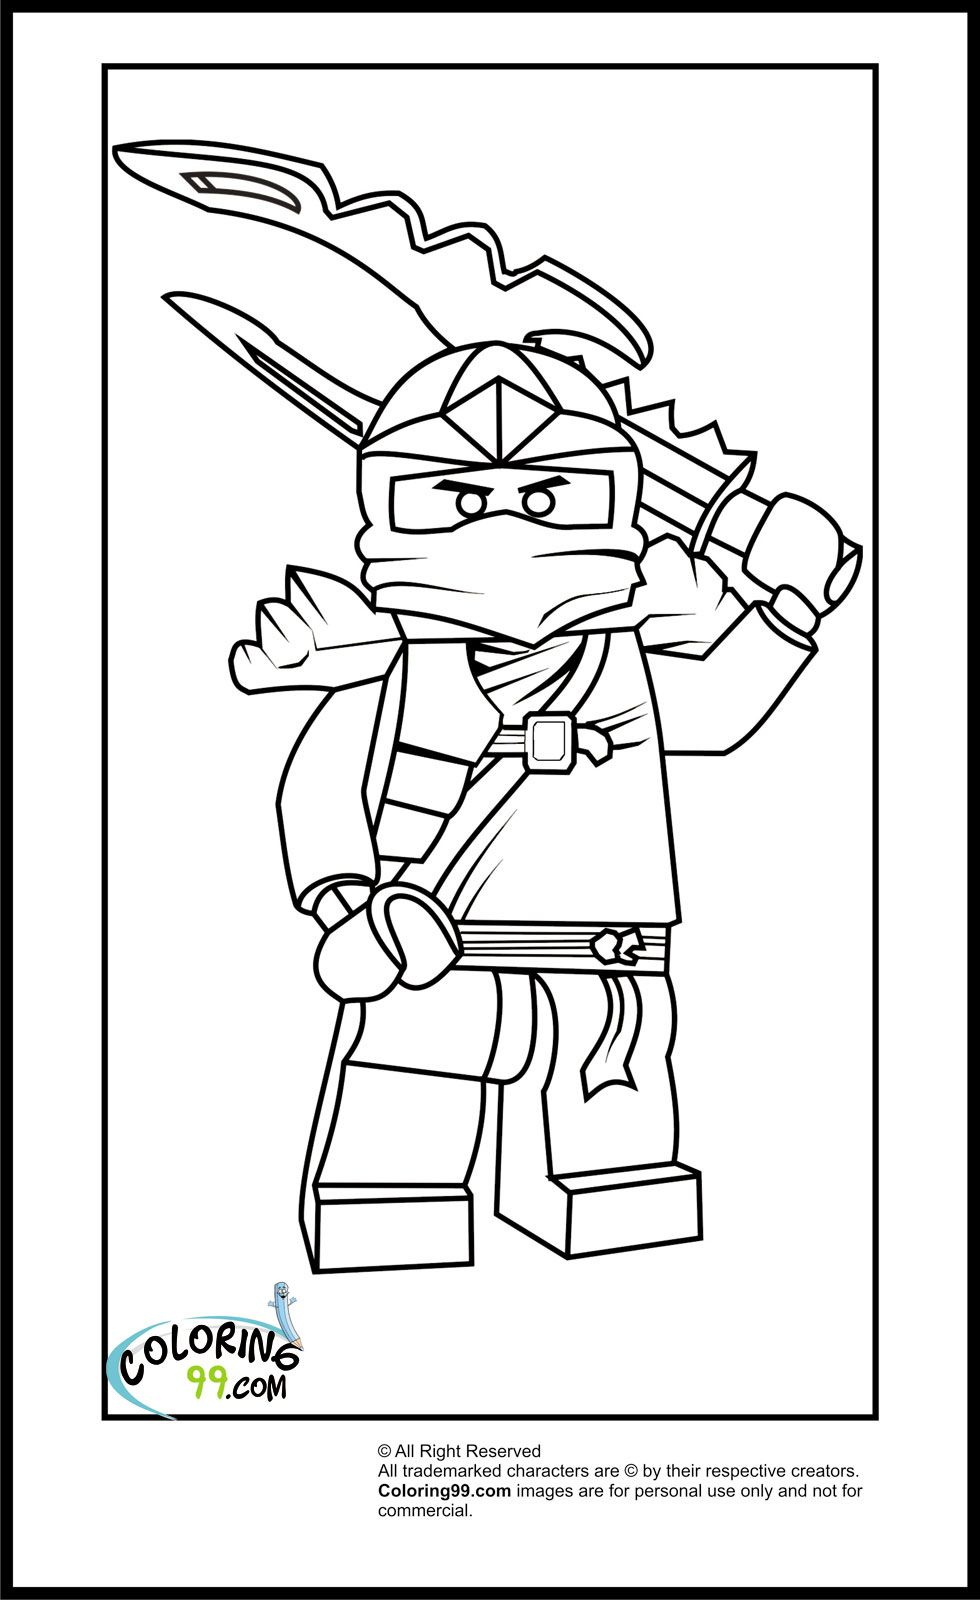 Cole ninjago coloring games online for kids - Lego Ninjago Coloring Pages